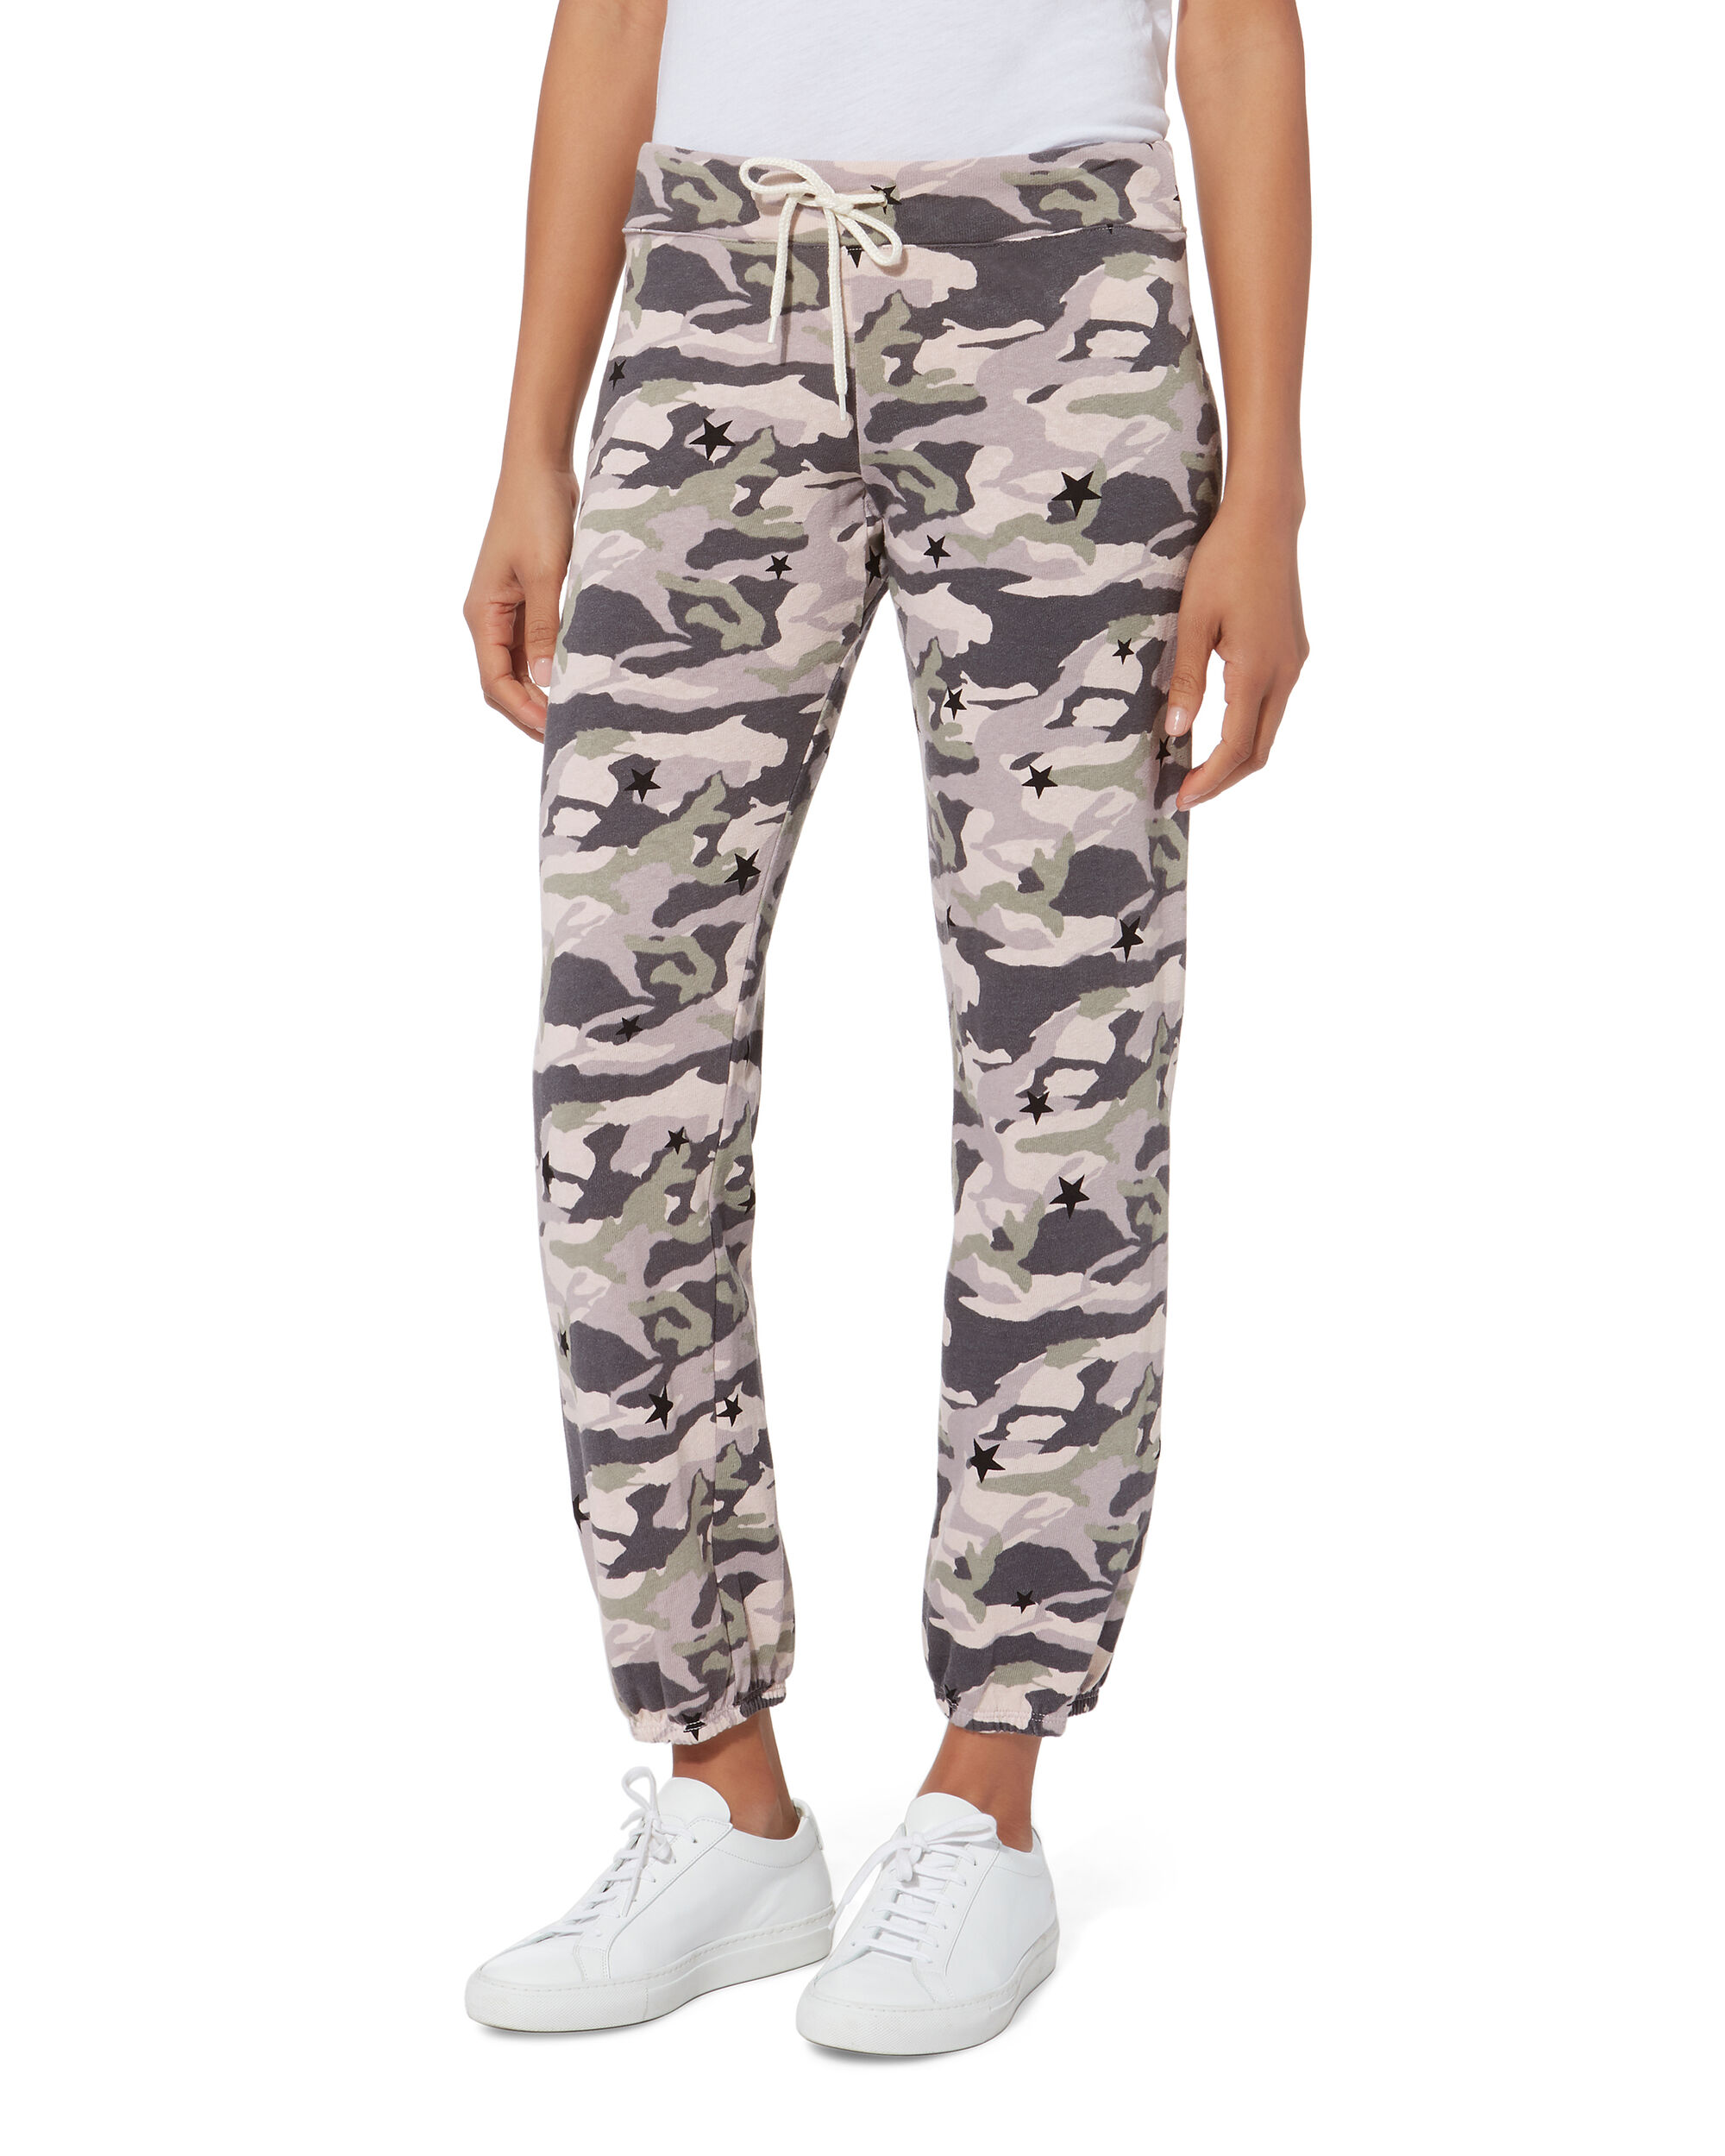 Camo Star Sweatpants, ROSE, hi-res